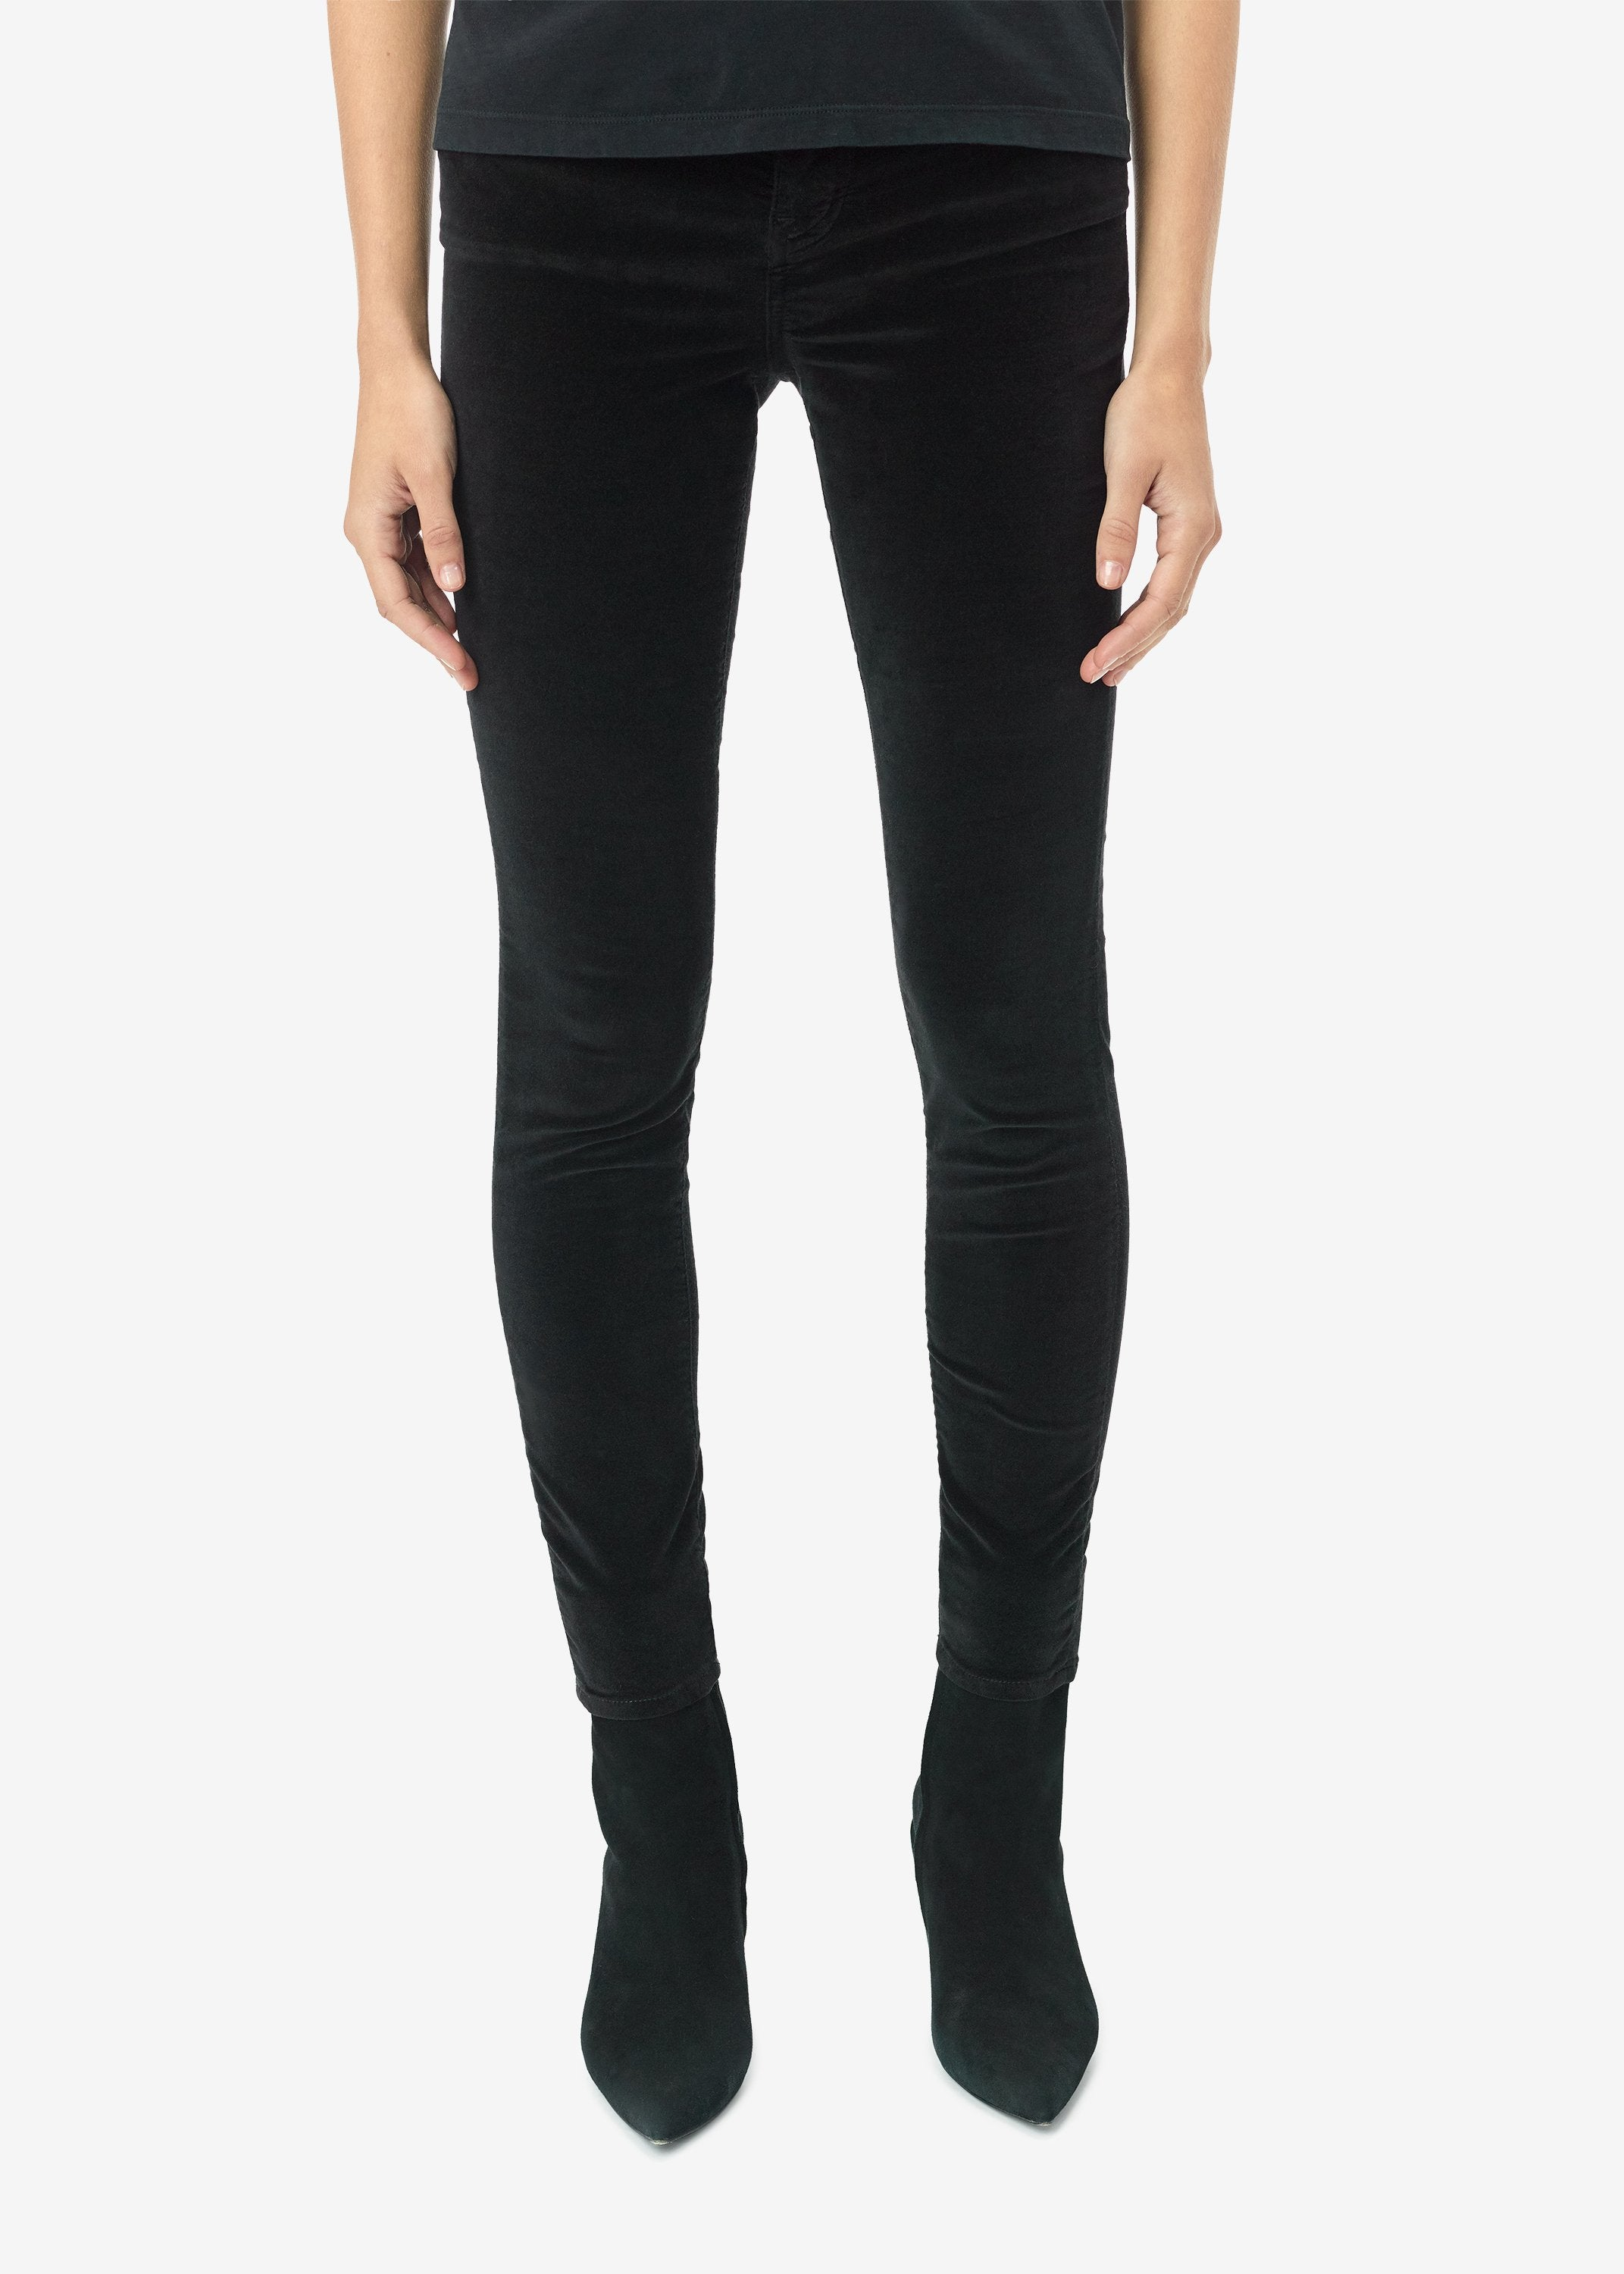 velour-skinny-stack-pants-black-image-1